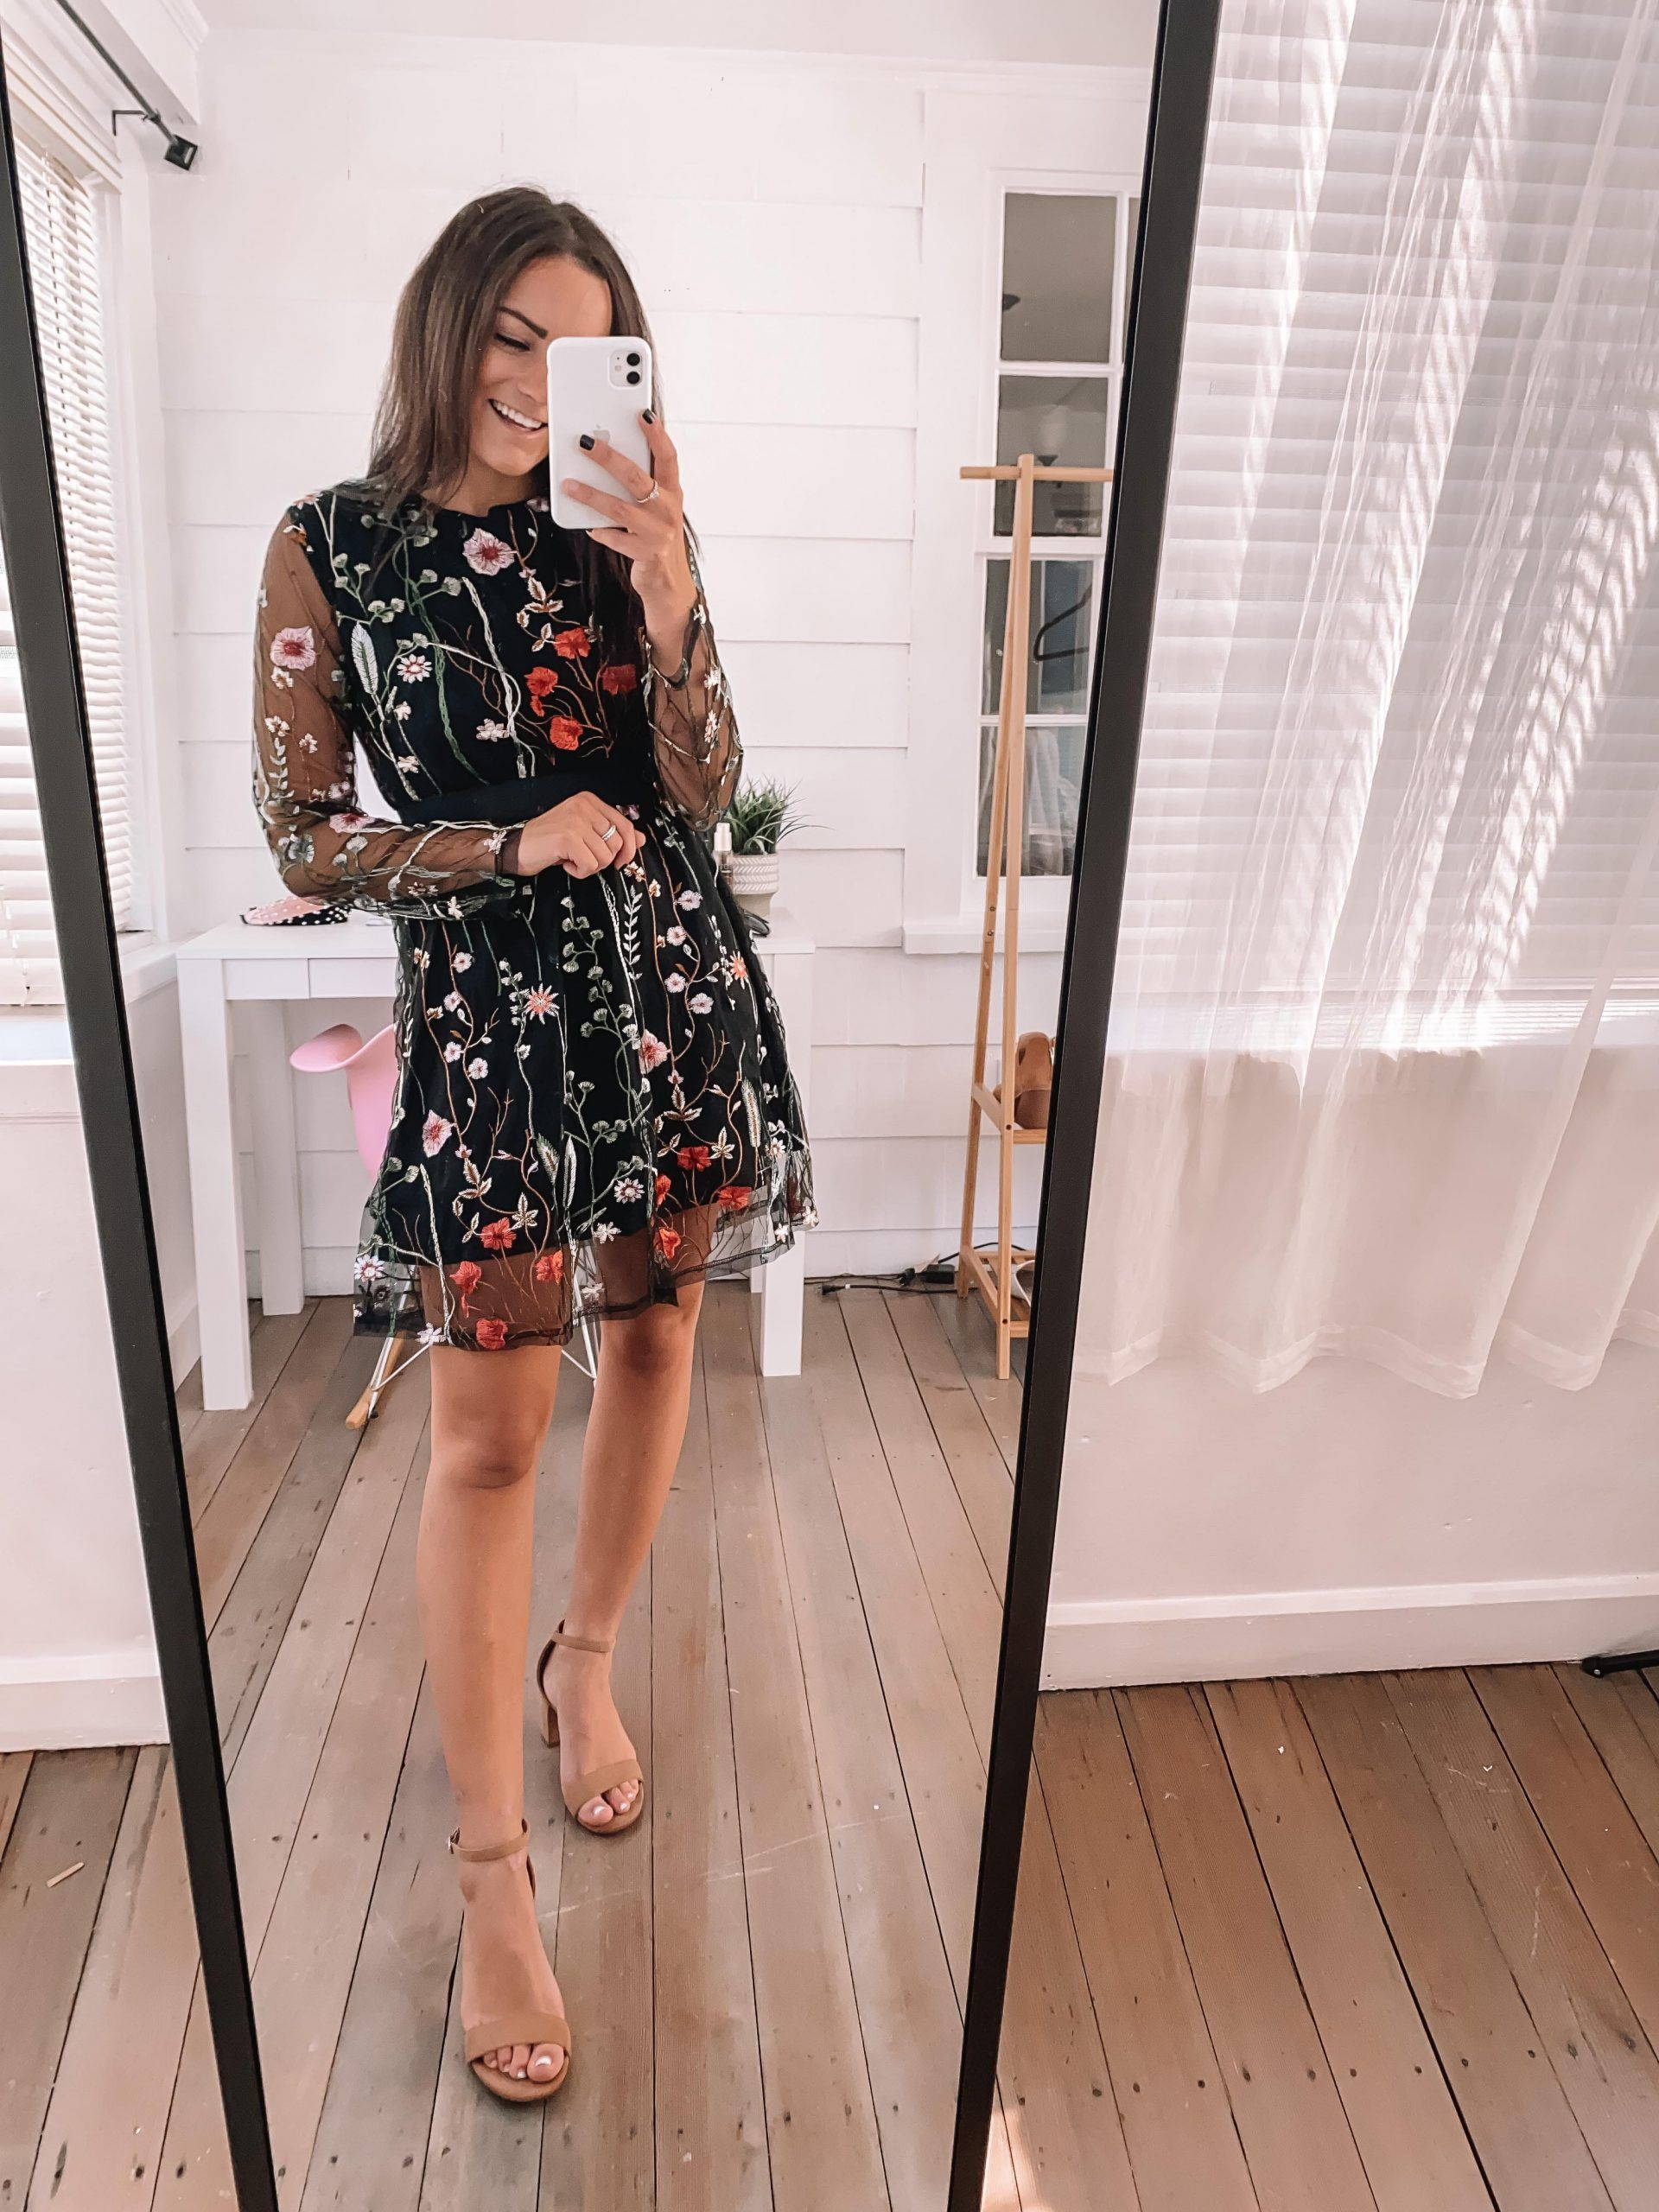 Dresses To Wear To A Fall Wedding Fall Wedding Guest Dress Guest Dresses Wedding Attire Guest [ 2560 x 1920 Pixel ]